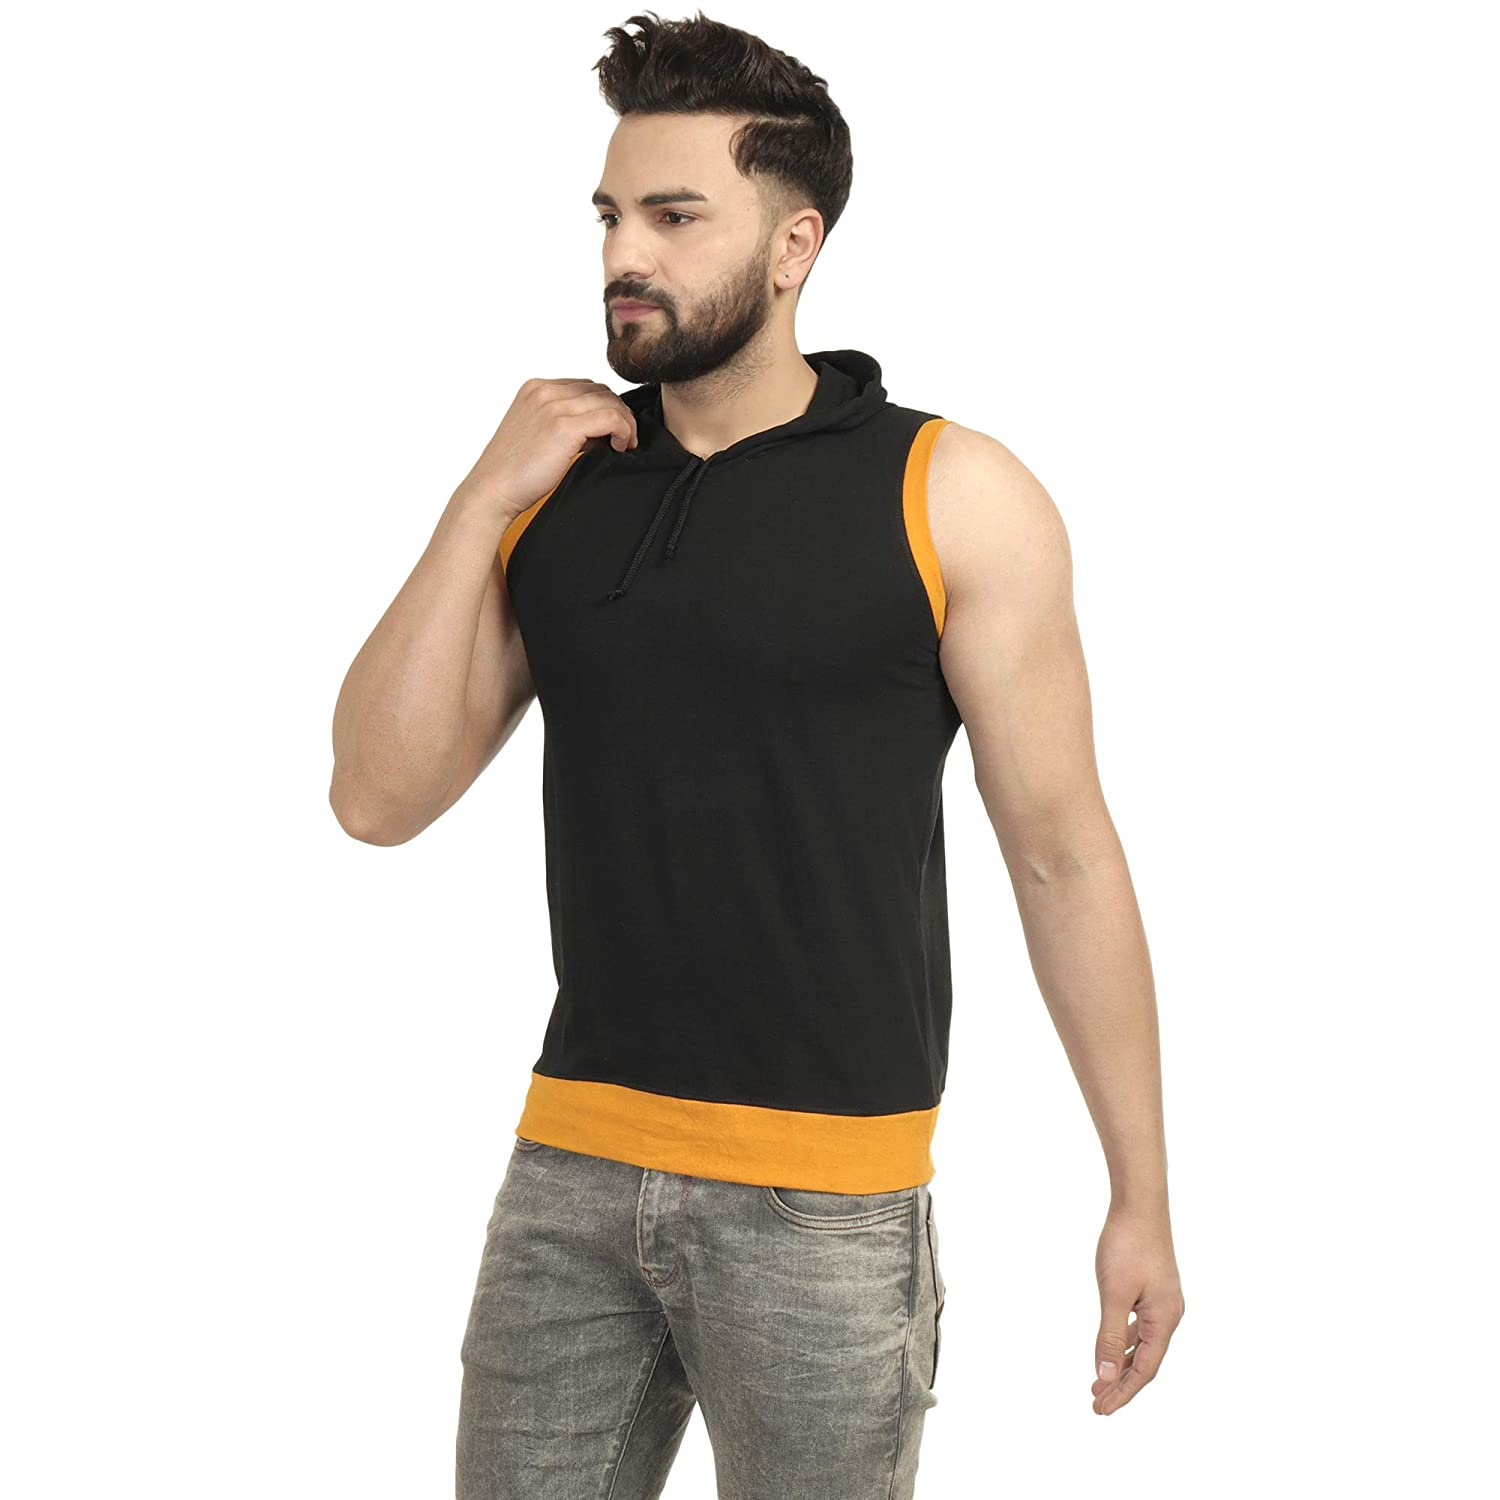 CHIRKUT Men's Plain Slim Fit T-Shirt